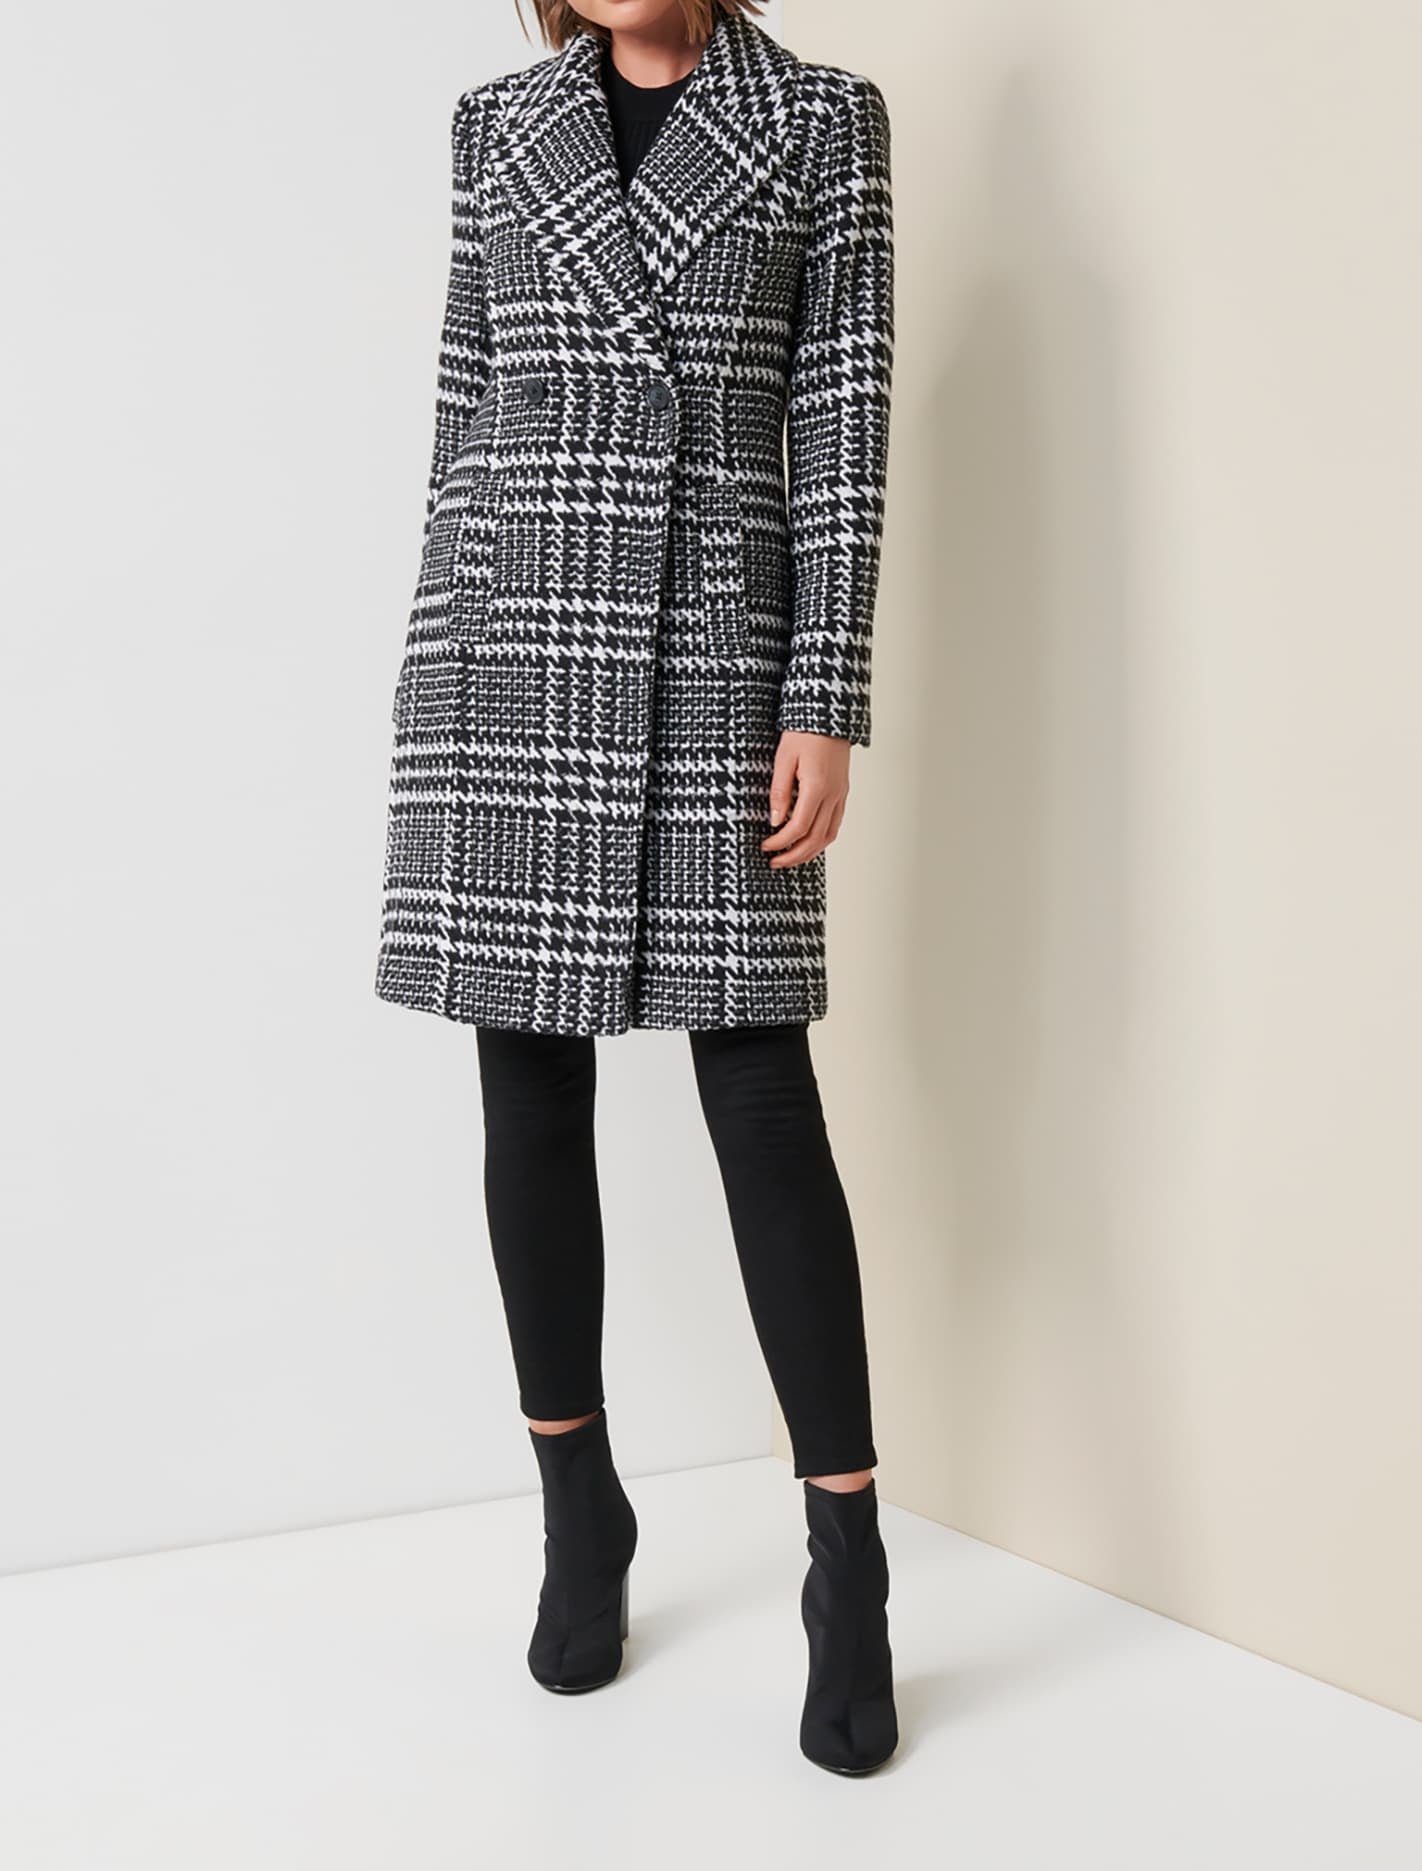 1950s Jackets, Coats, Bolero | Swing, Pin Up, Rockabilly Jillian Houndstooth Coat - Black and Porcelain - 14 $146.99 AT vintagedancer.com